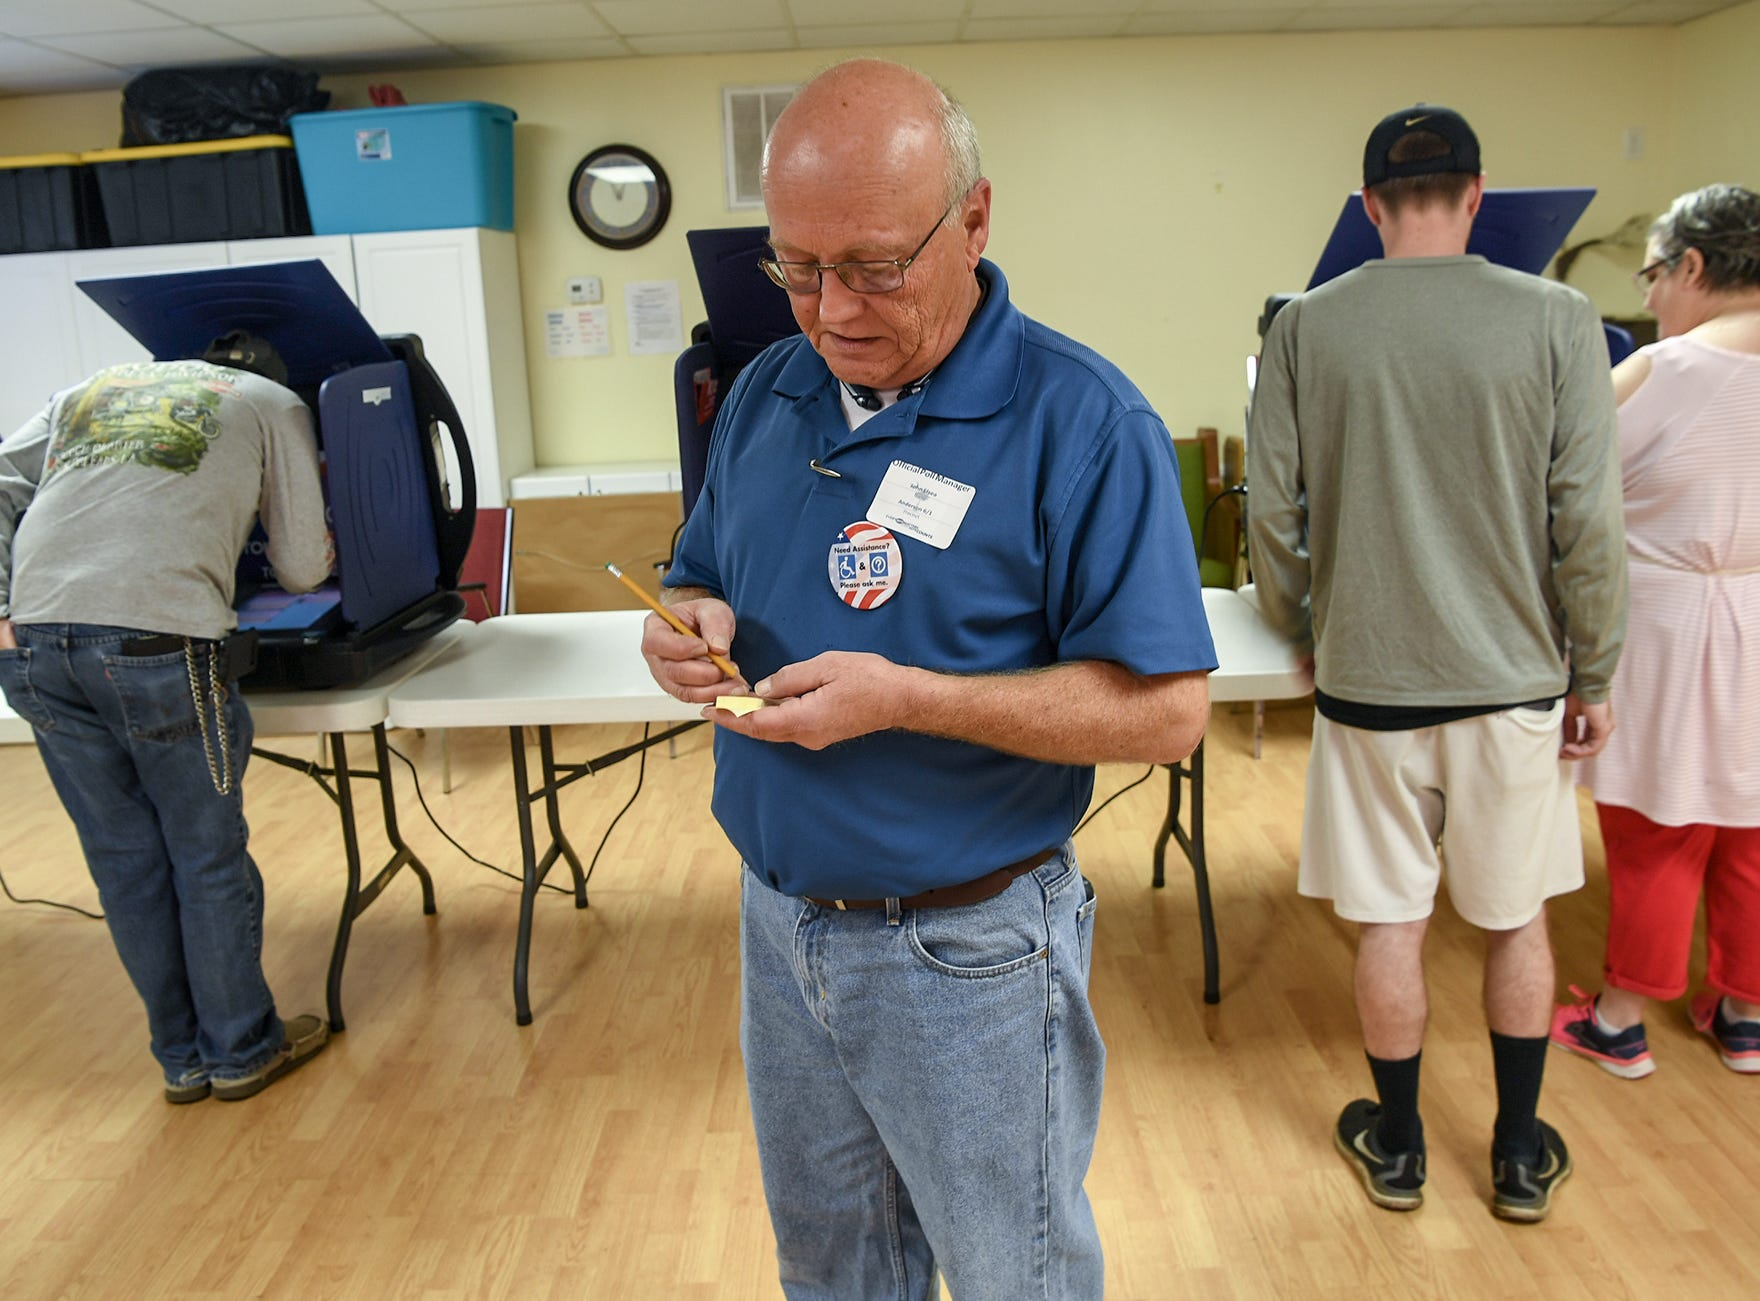 John Elsea, poll clerk for Anderson Precinct 6/1, keeps a tally of voter totals up through lunch, where people vote at Trinity United Methodist Church in Anderson on Tuesday, November 6, 2018. By 1 p.m., 536 voted at the precinct.